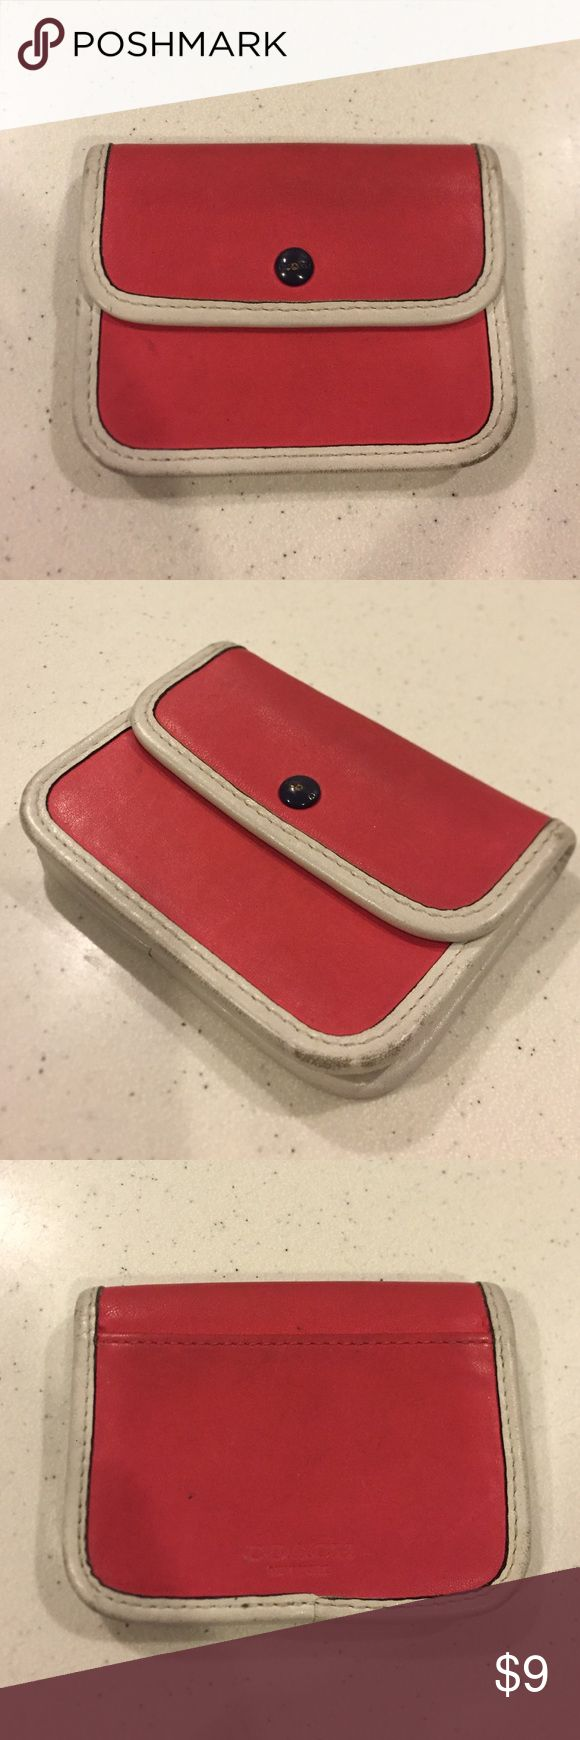 Coach Legacy Two Tone Card Case Coral/White Coach Legacy Two Tone Card Case Coral/White. Button and overall case have obvious signs of wear and dirt. Interior has a pocket and the back has another pocket. No rips or tears. Price reflects condition. Coach Bags Wallets